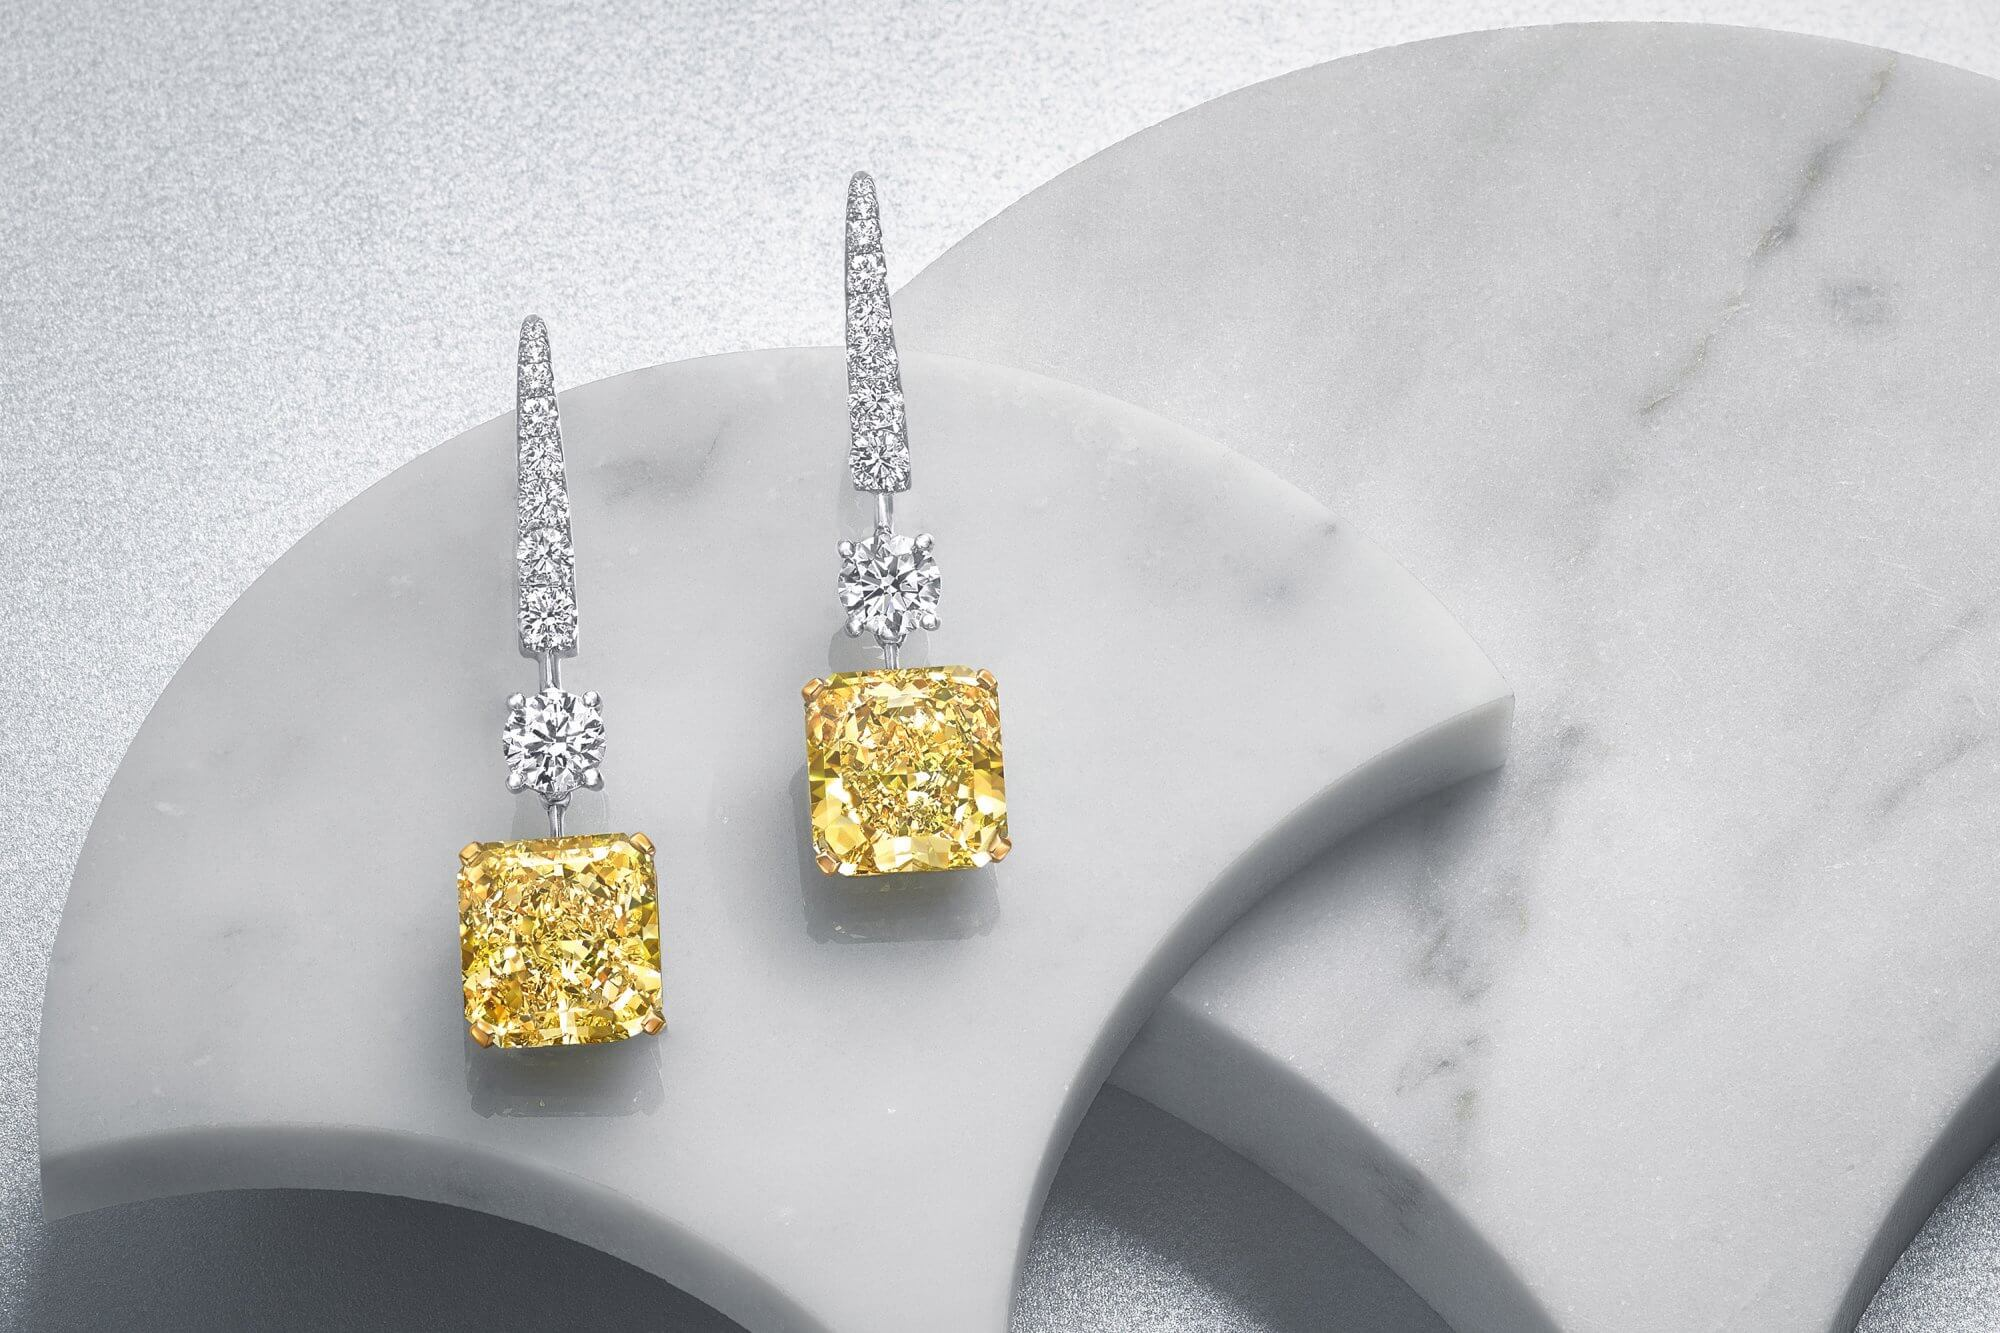 studs tamara designs shop in g stainless diamond canary earrings